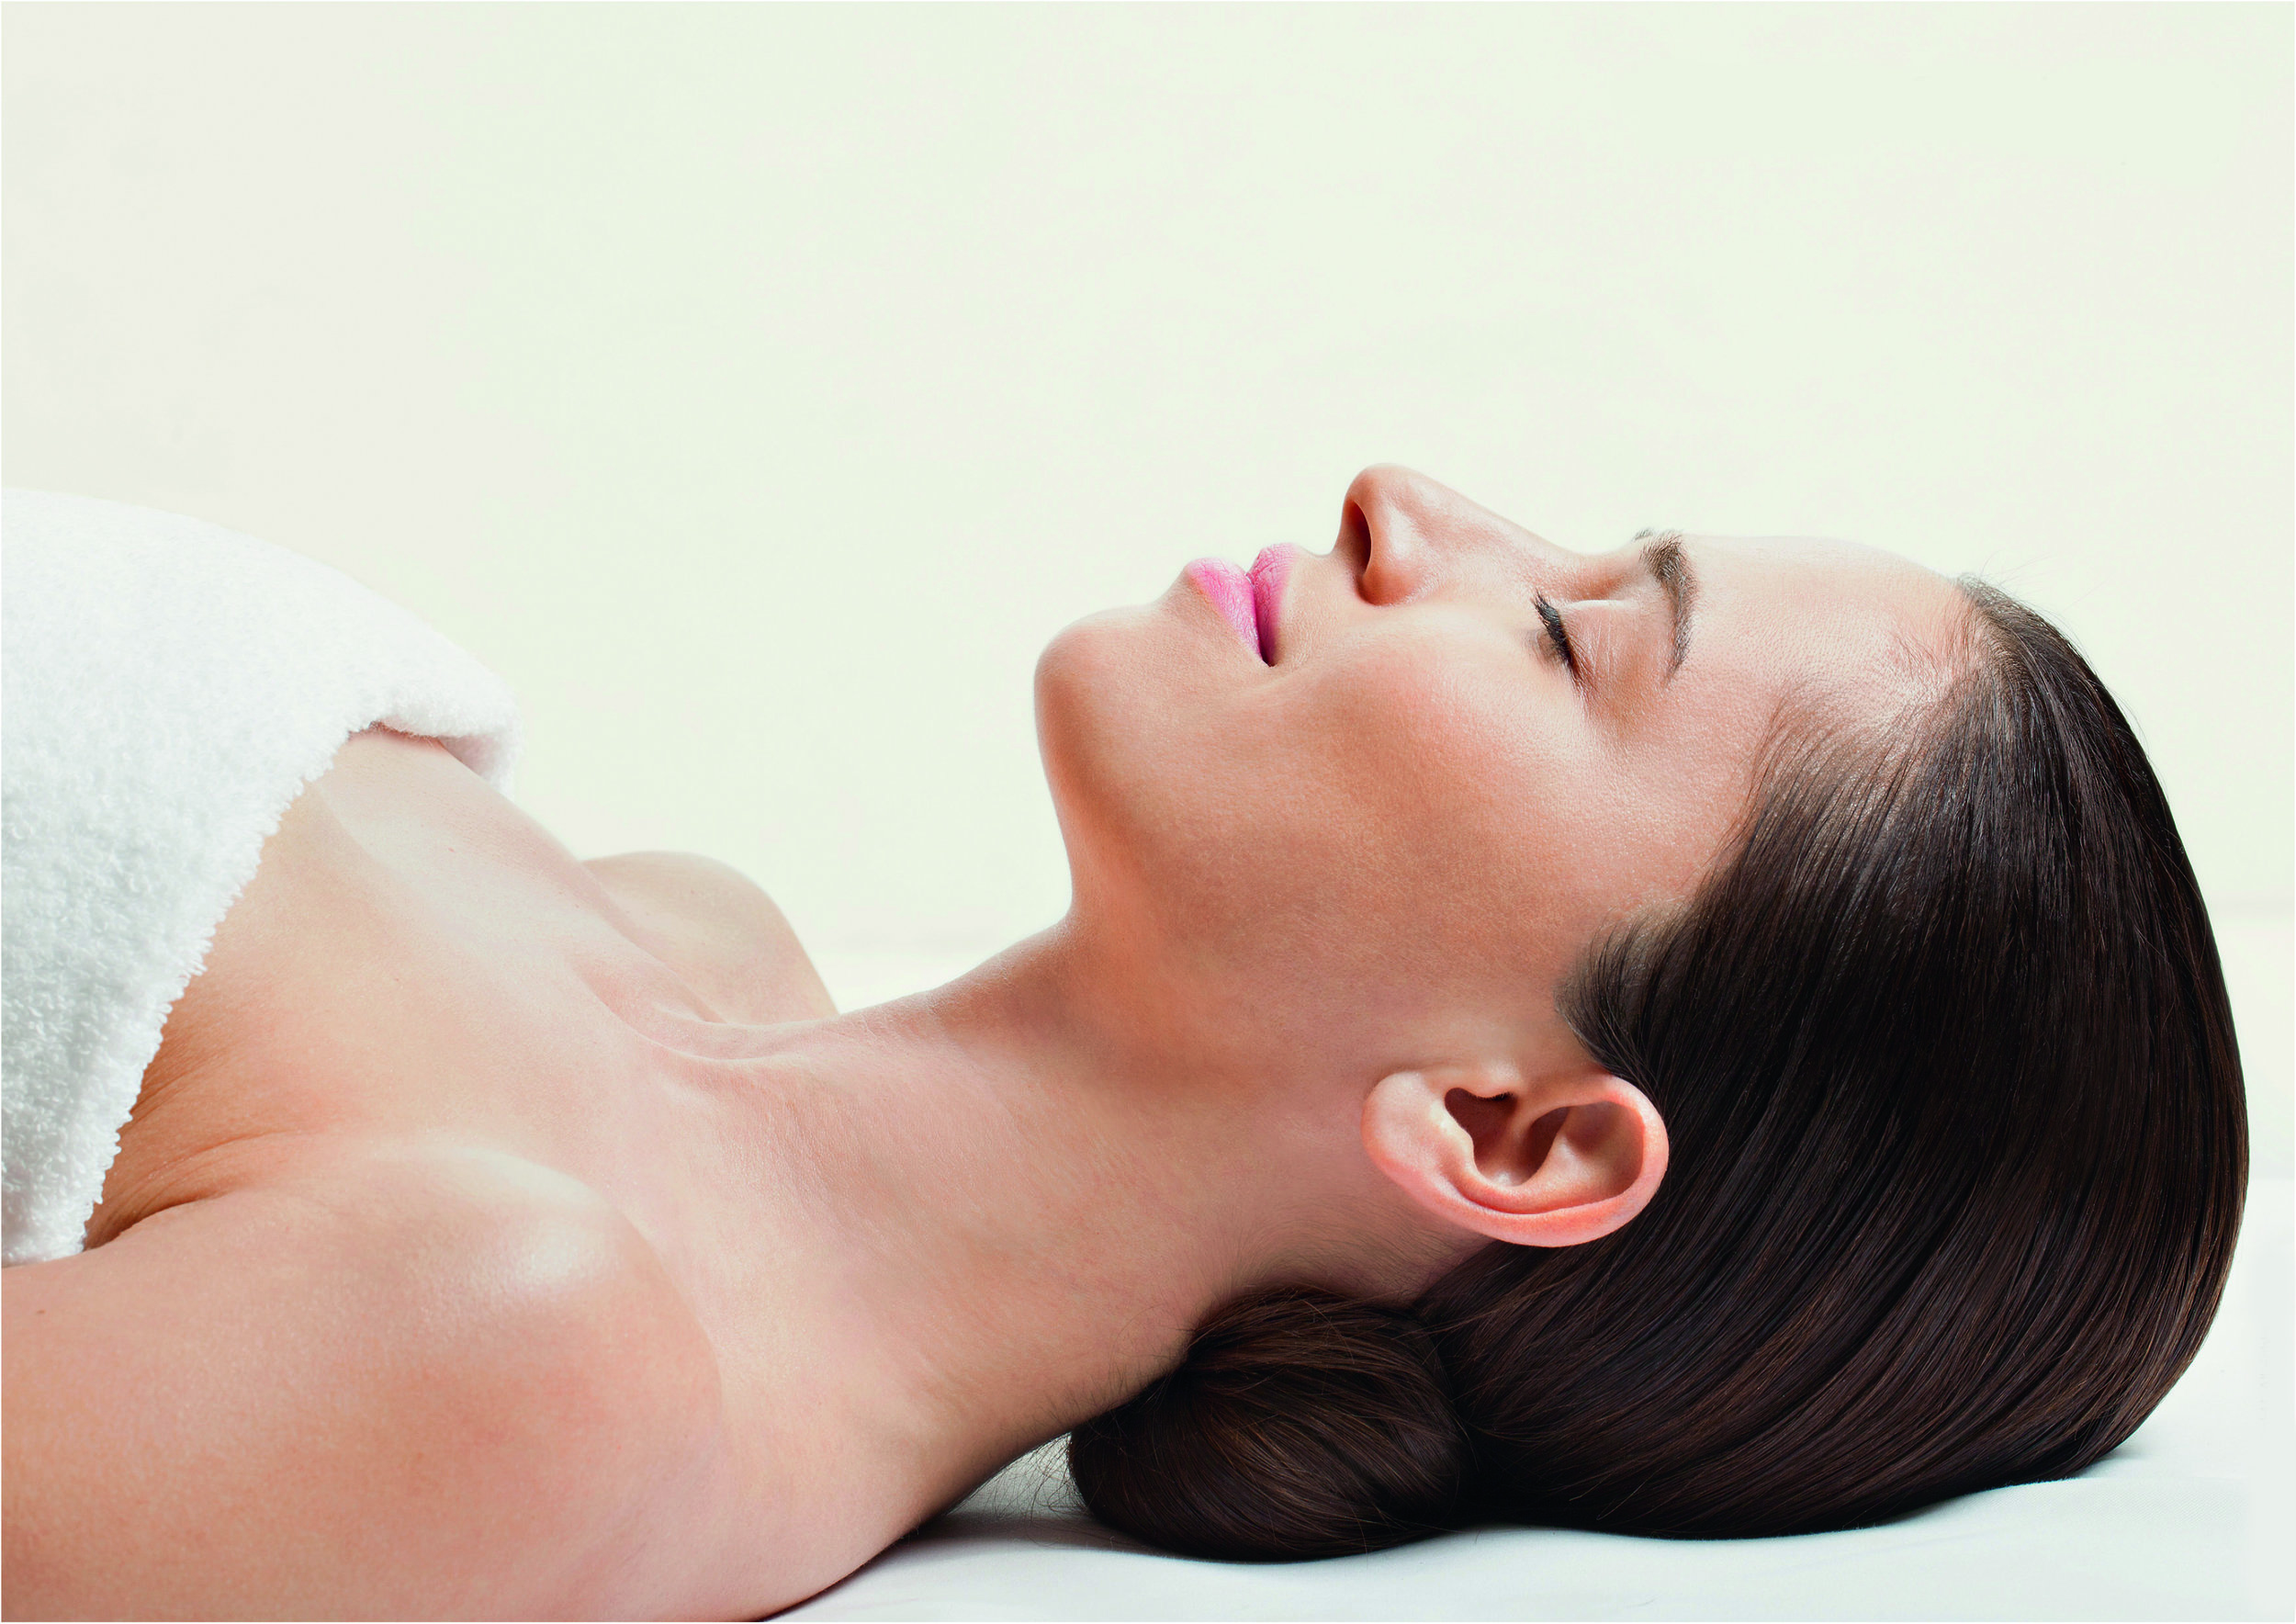 Hydradermie Lift Treatment   A 'fitness instructor' for your facial muscles, this treatment utilizes micro-currents to stimulate the face muscles and effectively lifts the muscles and skin tissues to reduce saggy skin and wrinkles.   *Click on the treatment image to learn more